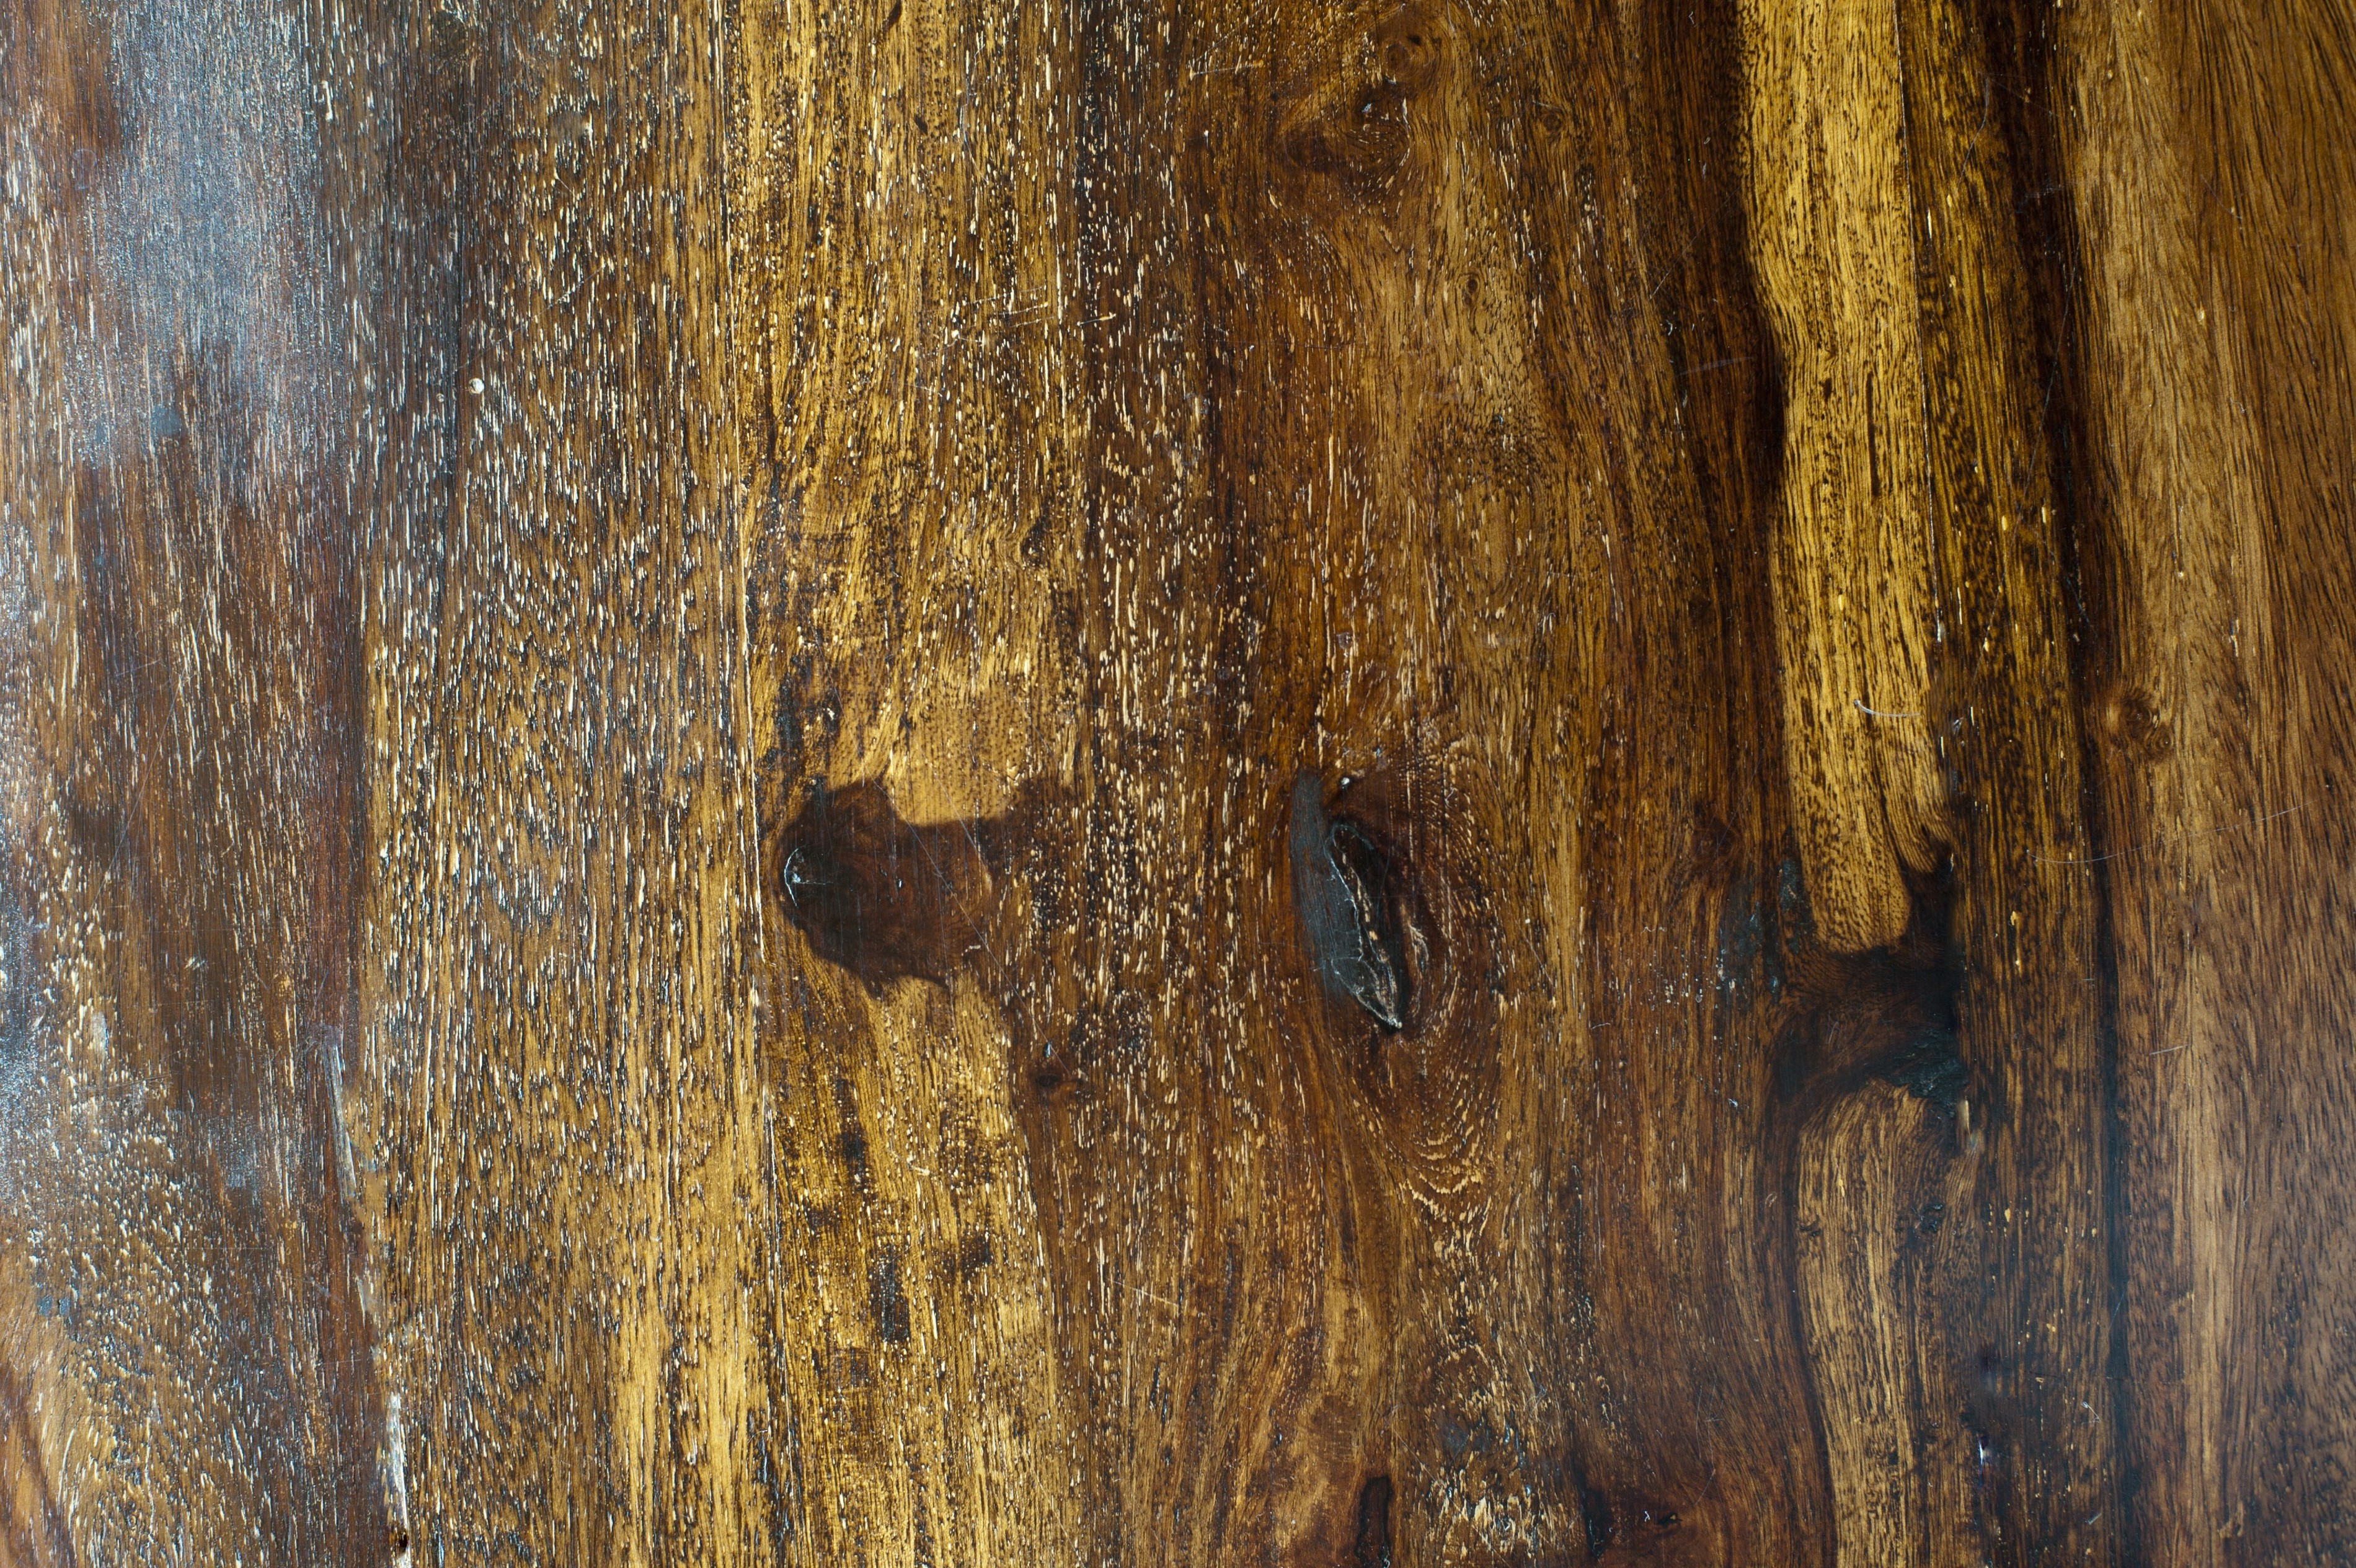 macro closeup image of a dark polished wood surface showing details of the wood grain